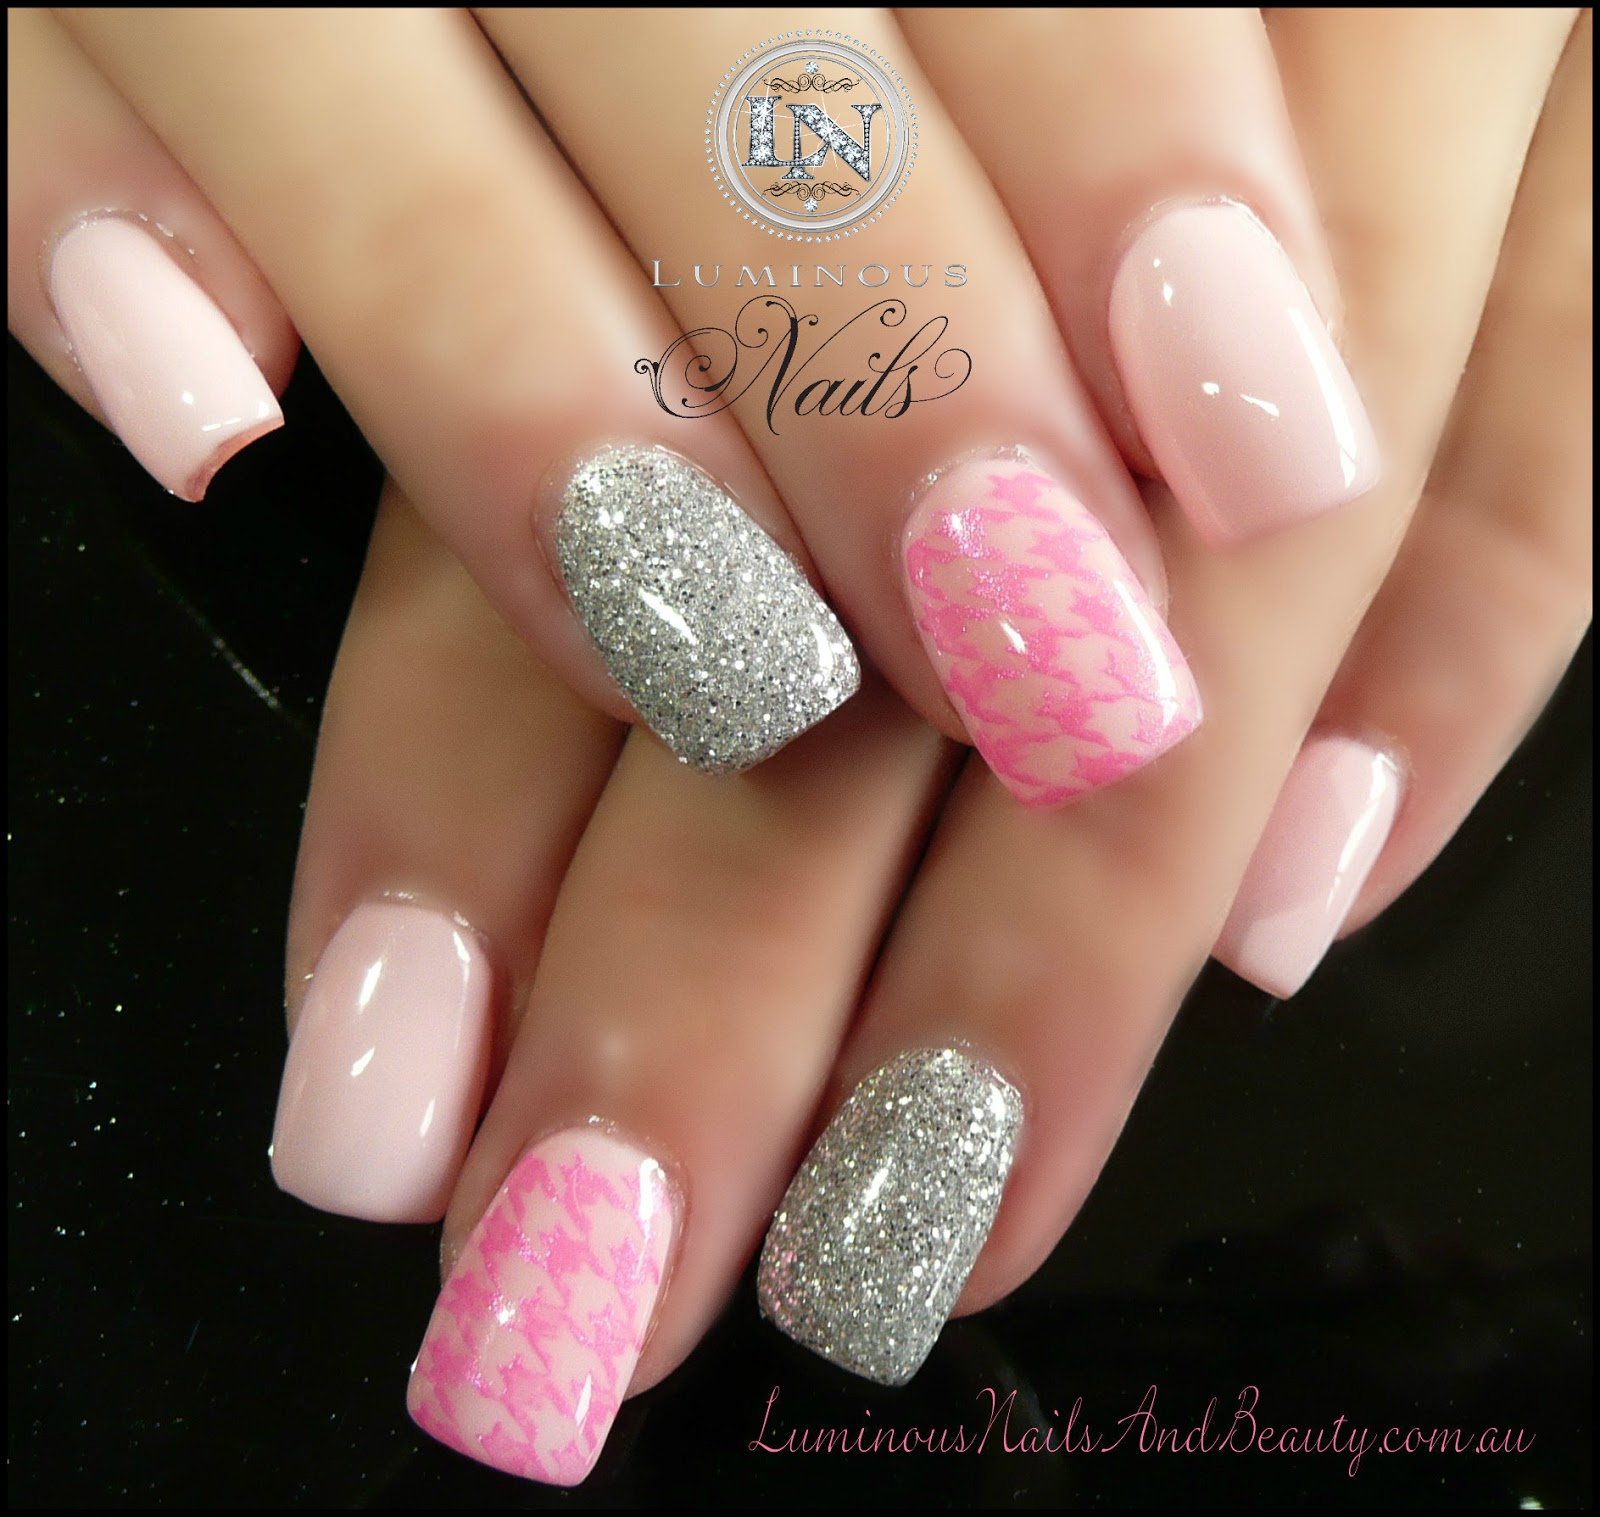 Stiletto nail designs 2015 nail art gallery stiletto nail art photos stiletto nail designs 2015 prinsesfo Image collections